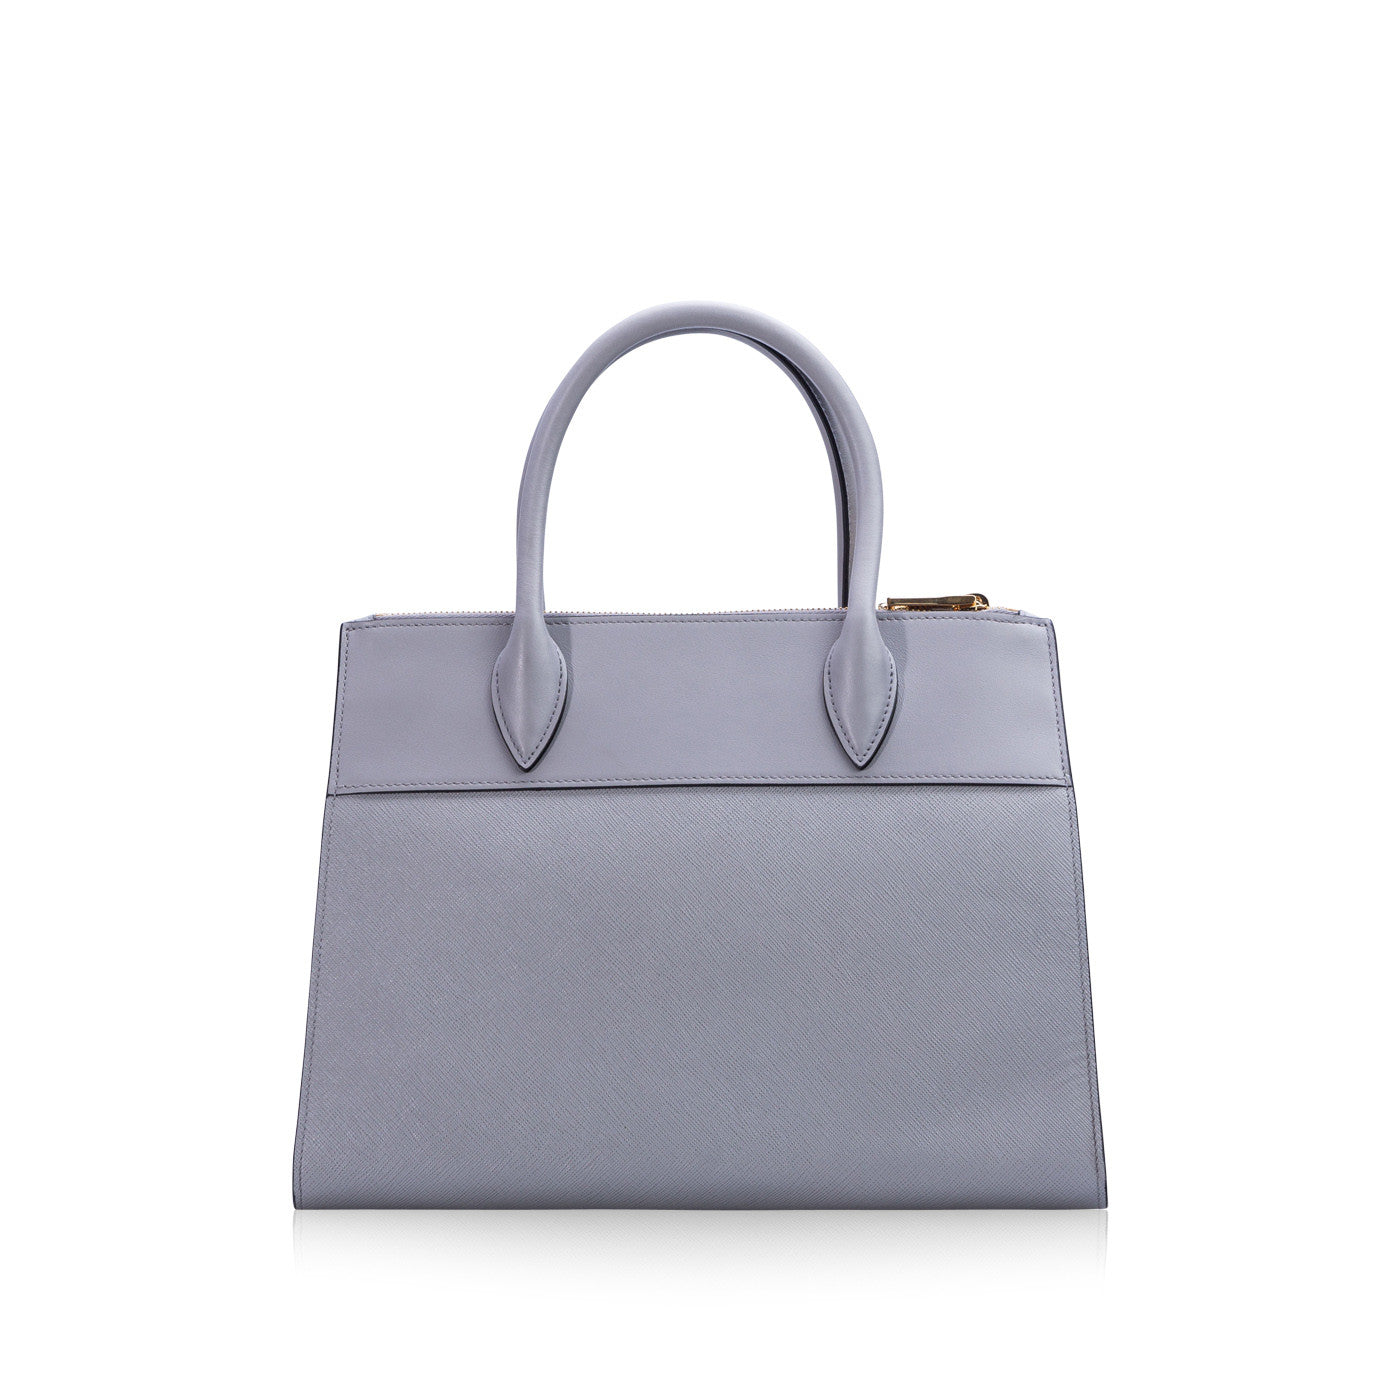 353a50684b37c3 Prada - Paradigme Light Grey | Bagista